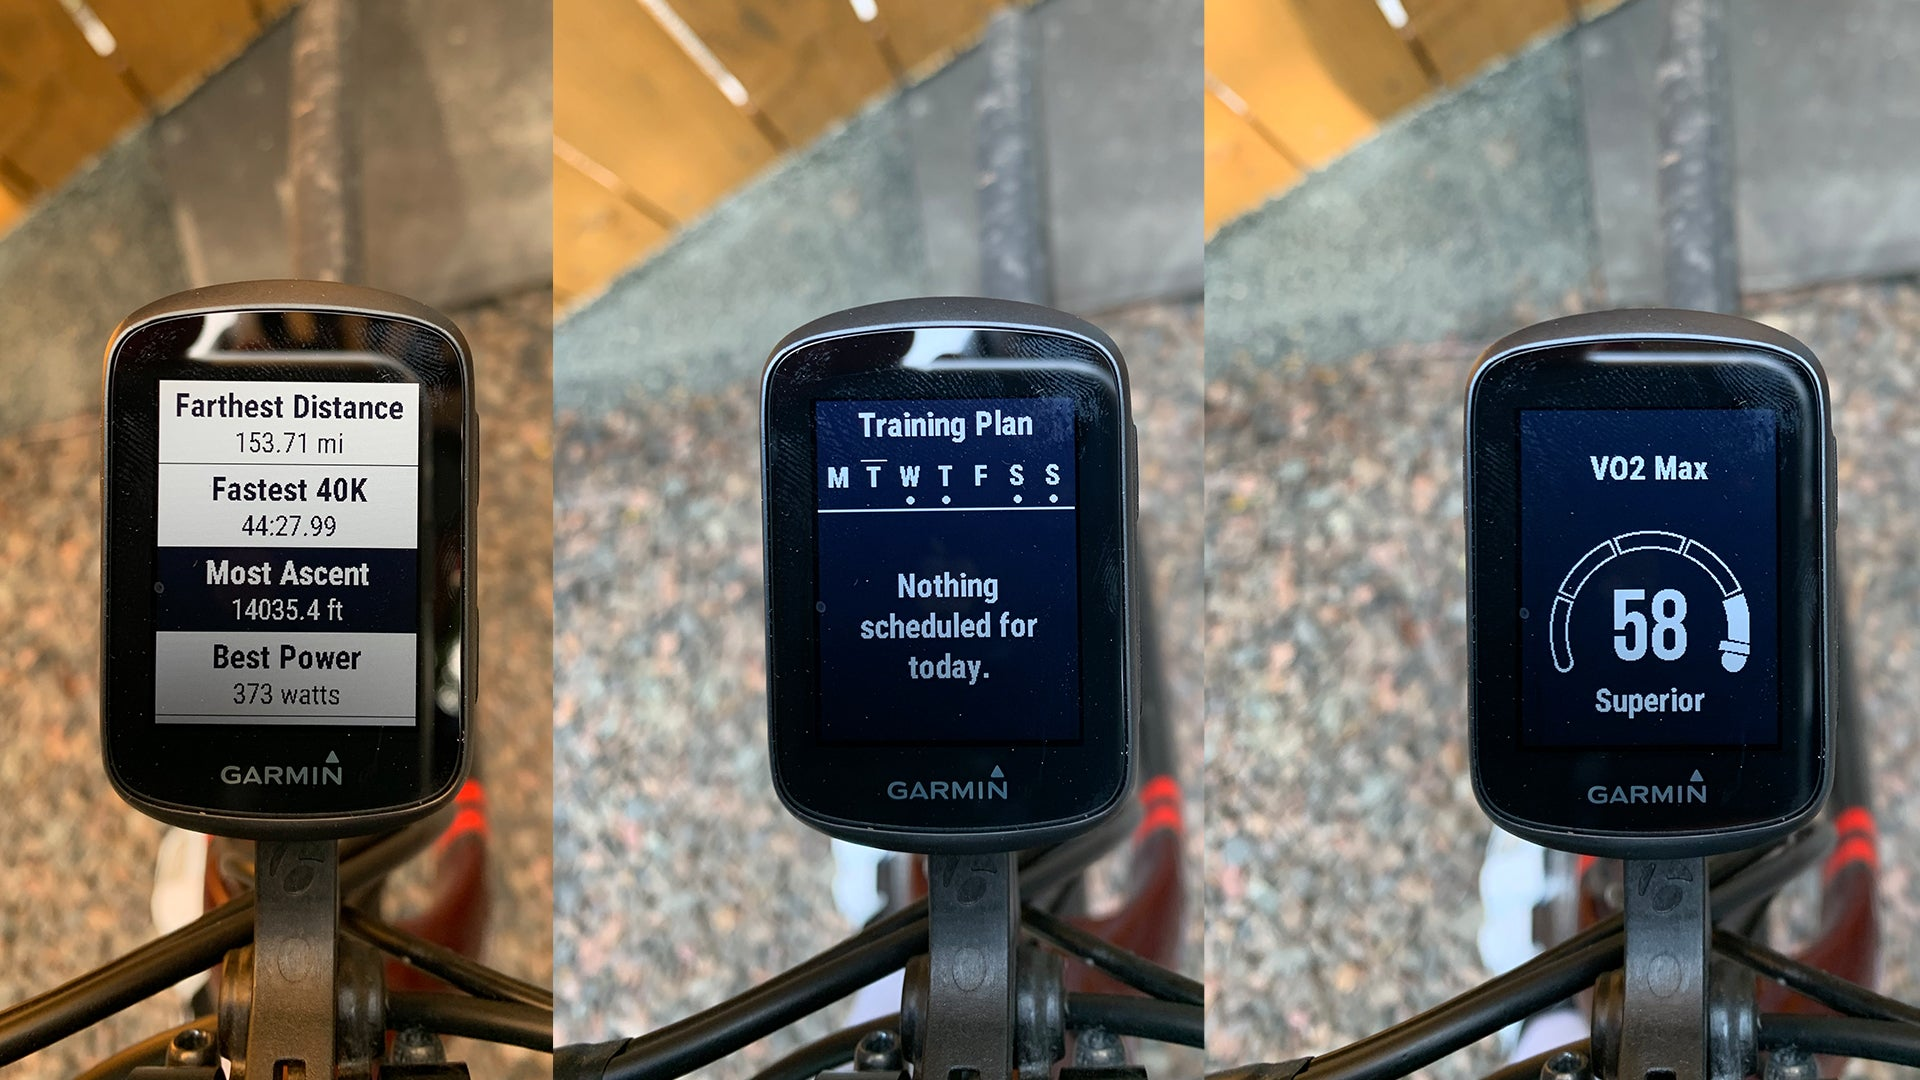 3 side-by-side images showing Garmin Edge displaying all-time stats, Training Plan integration, and VO2 max stats